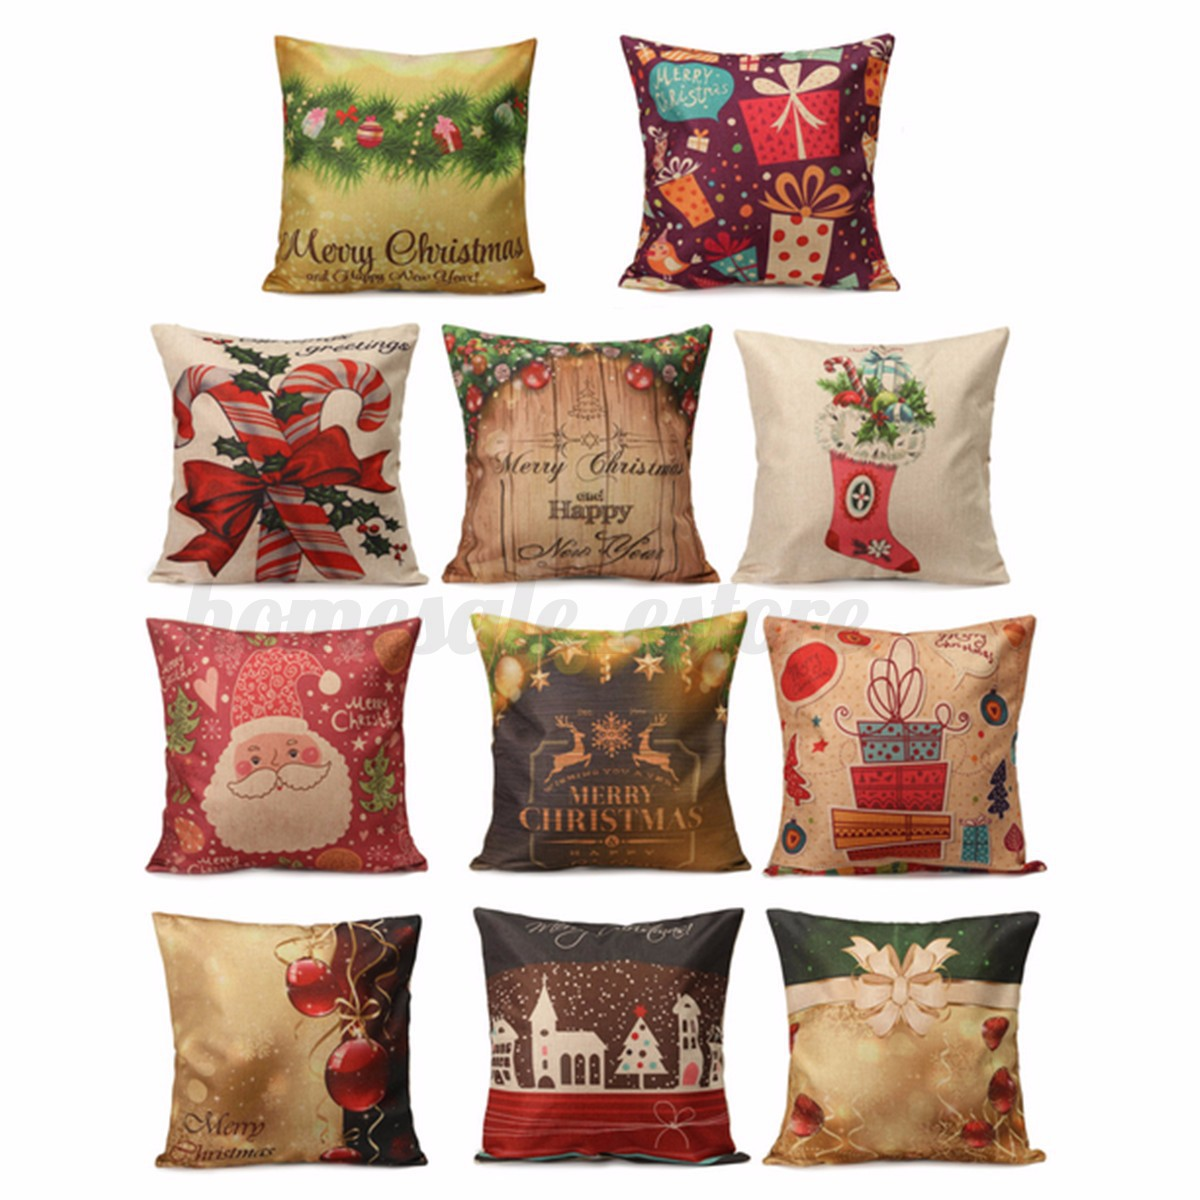 Christmas Decorative Pillow Cases : Vintage Cotton Linen Throw Pillow Case Xmas Cushion Cover Christmas Decor Gift eBay